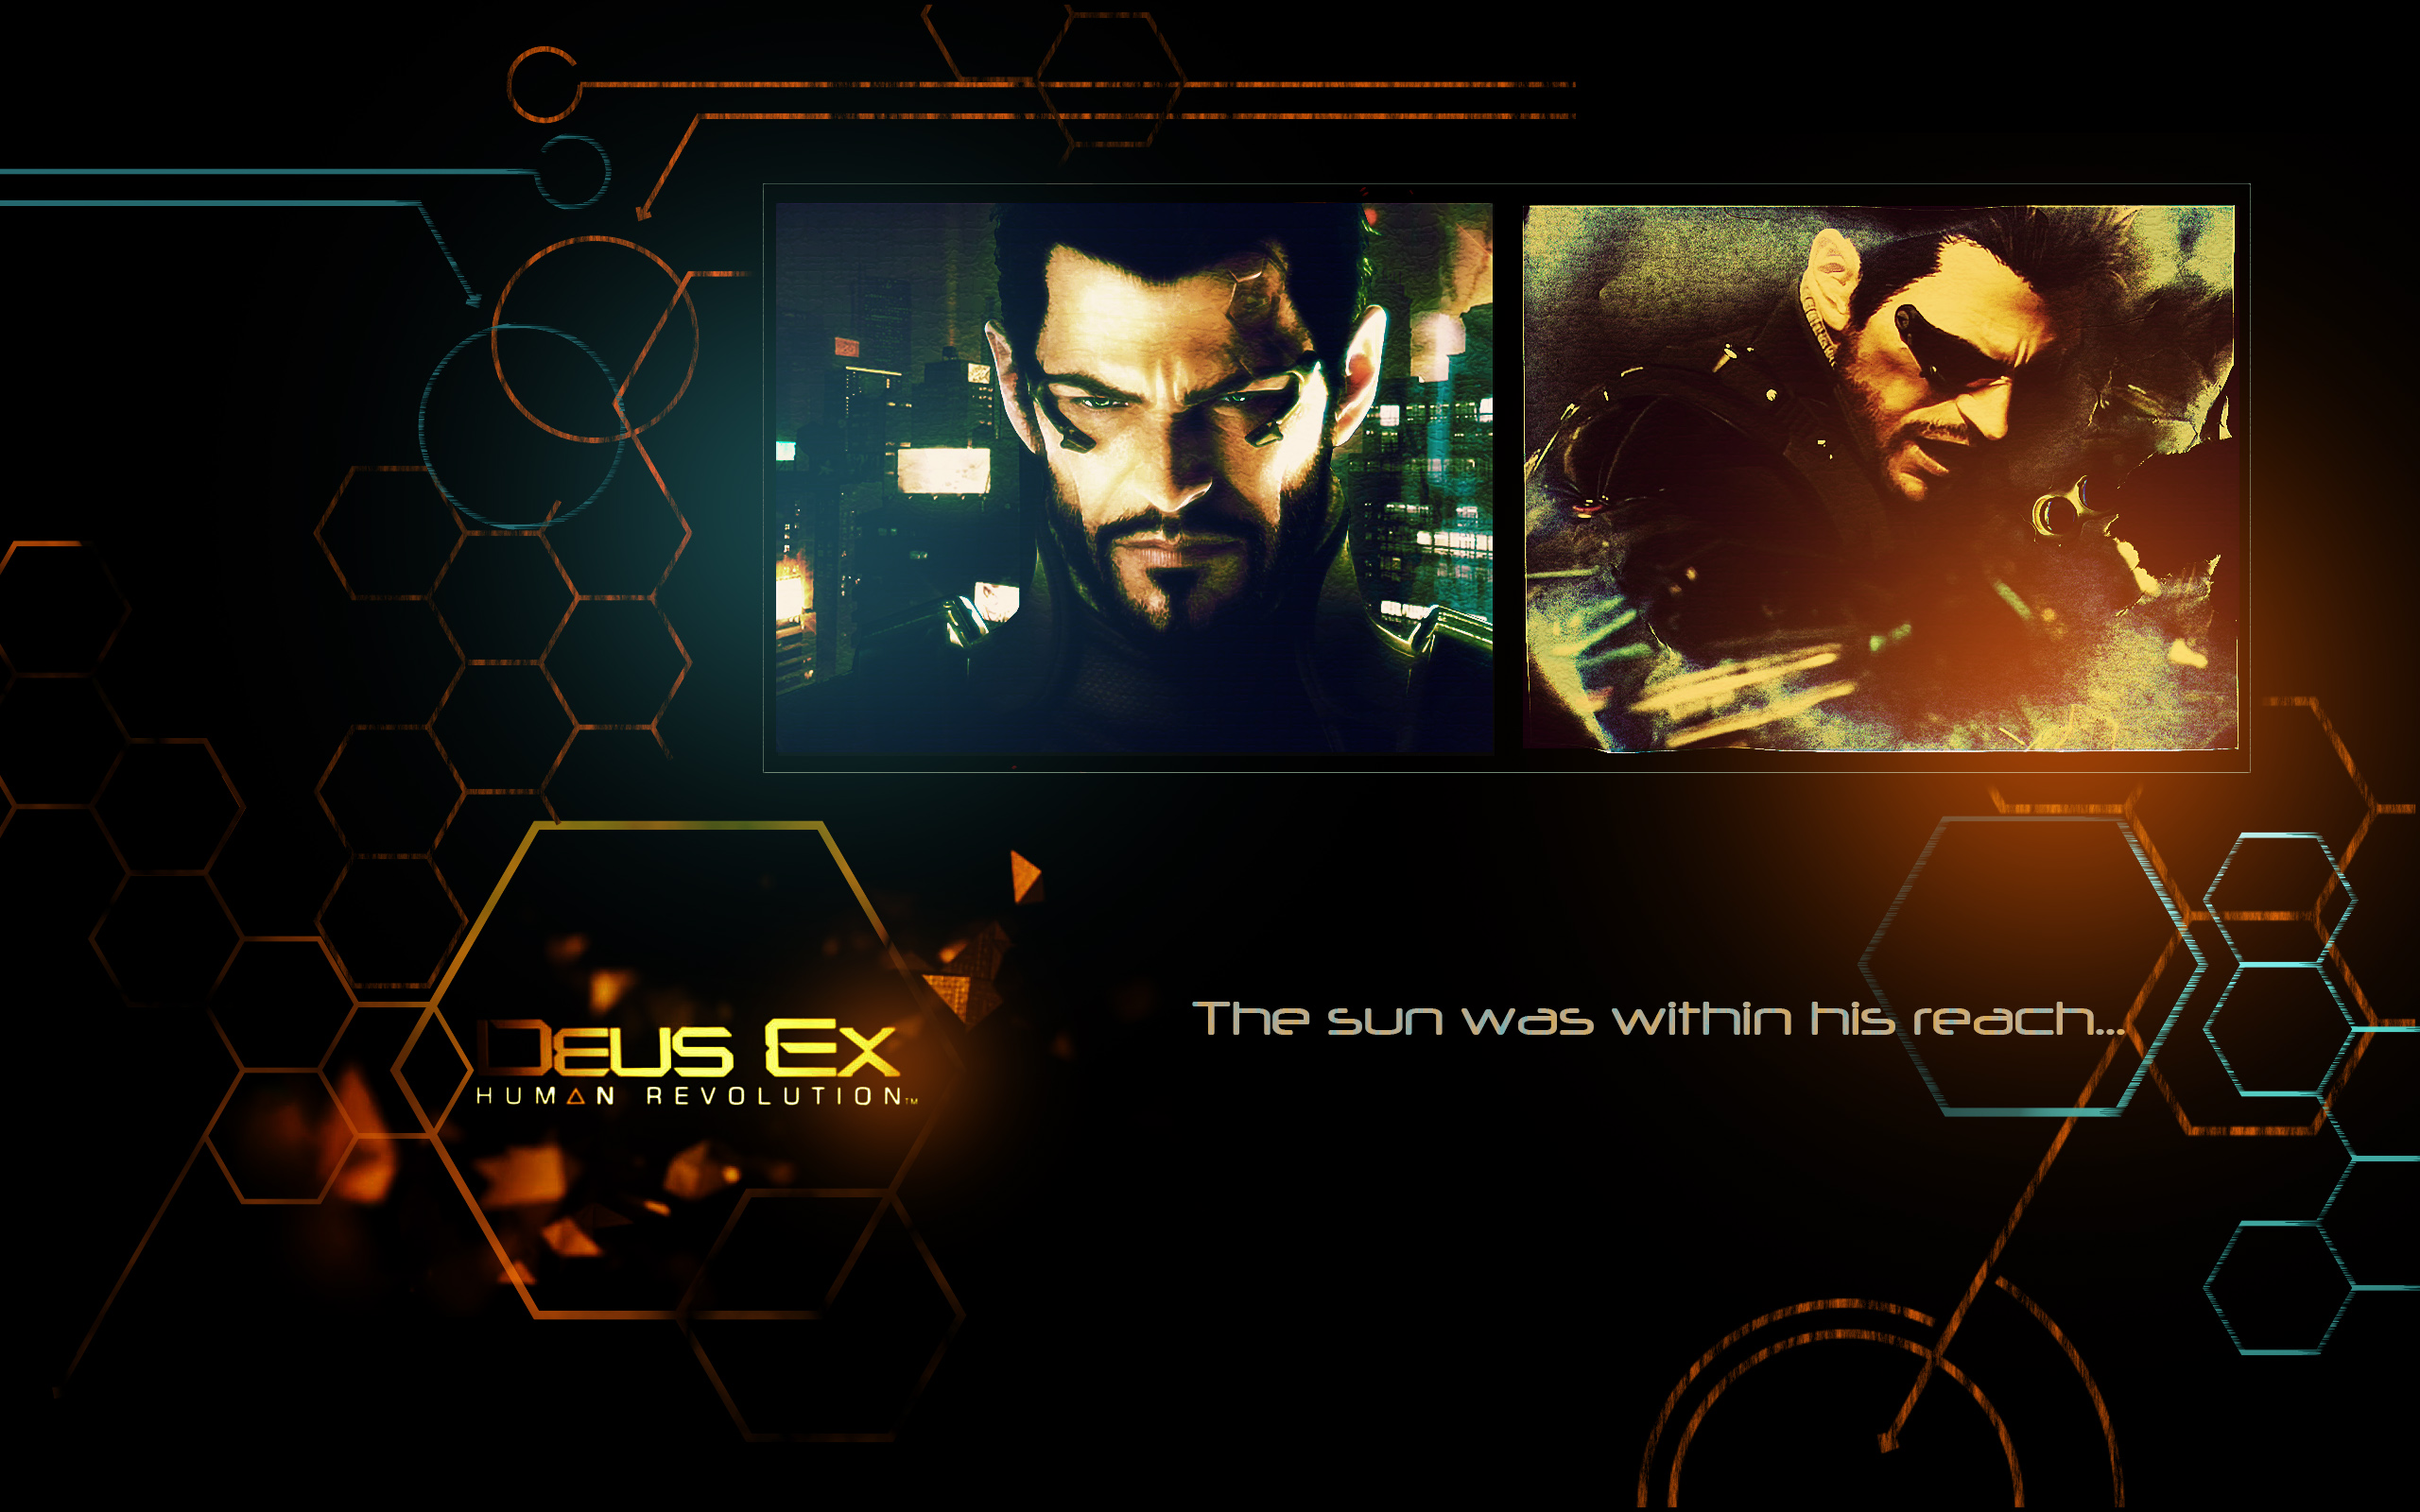 Deus Ex Human Revolution Anime Christmas Wallpaper Wallpaper